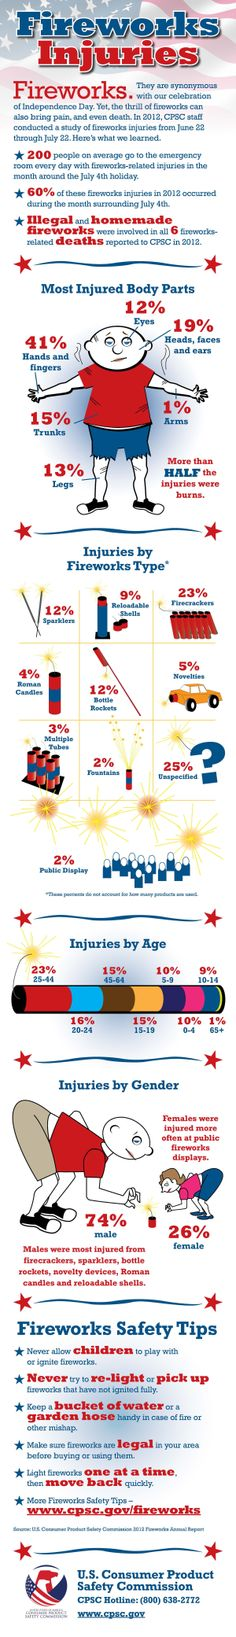 Happy 4th of July! When celebrating, here are a few safety tips to keep in mind.